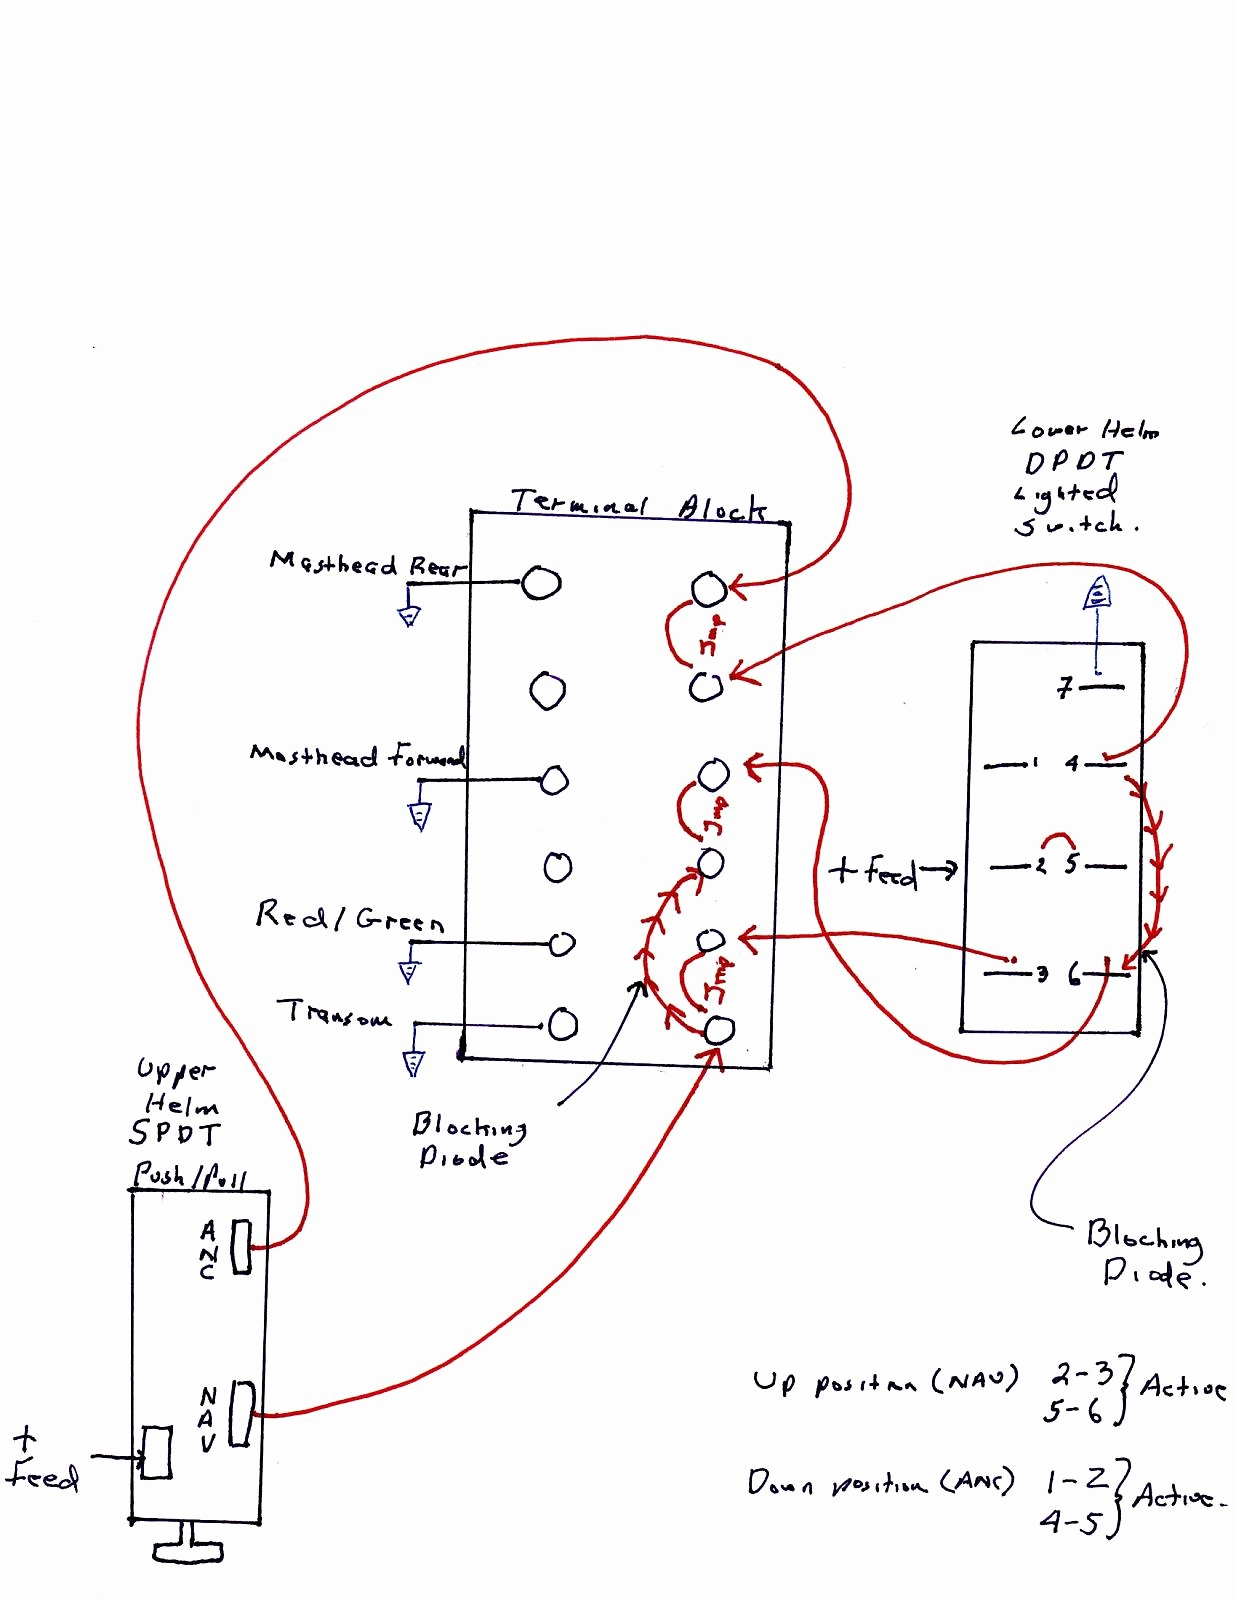 house wiring diagram light switch cat 5 australia household one power source 2 sketch at paintingvalley explore collection of